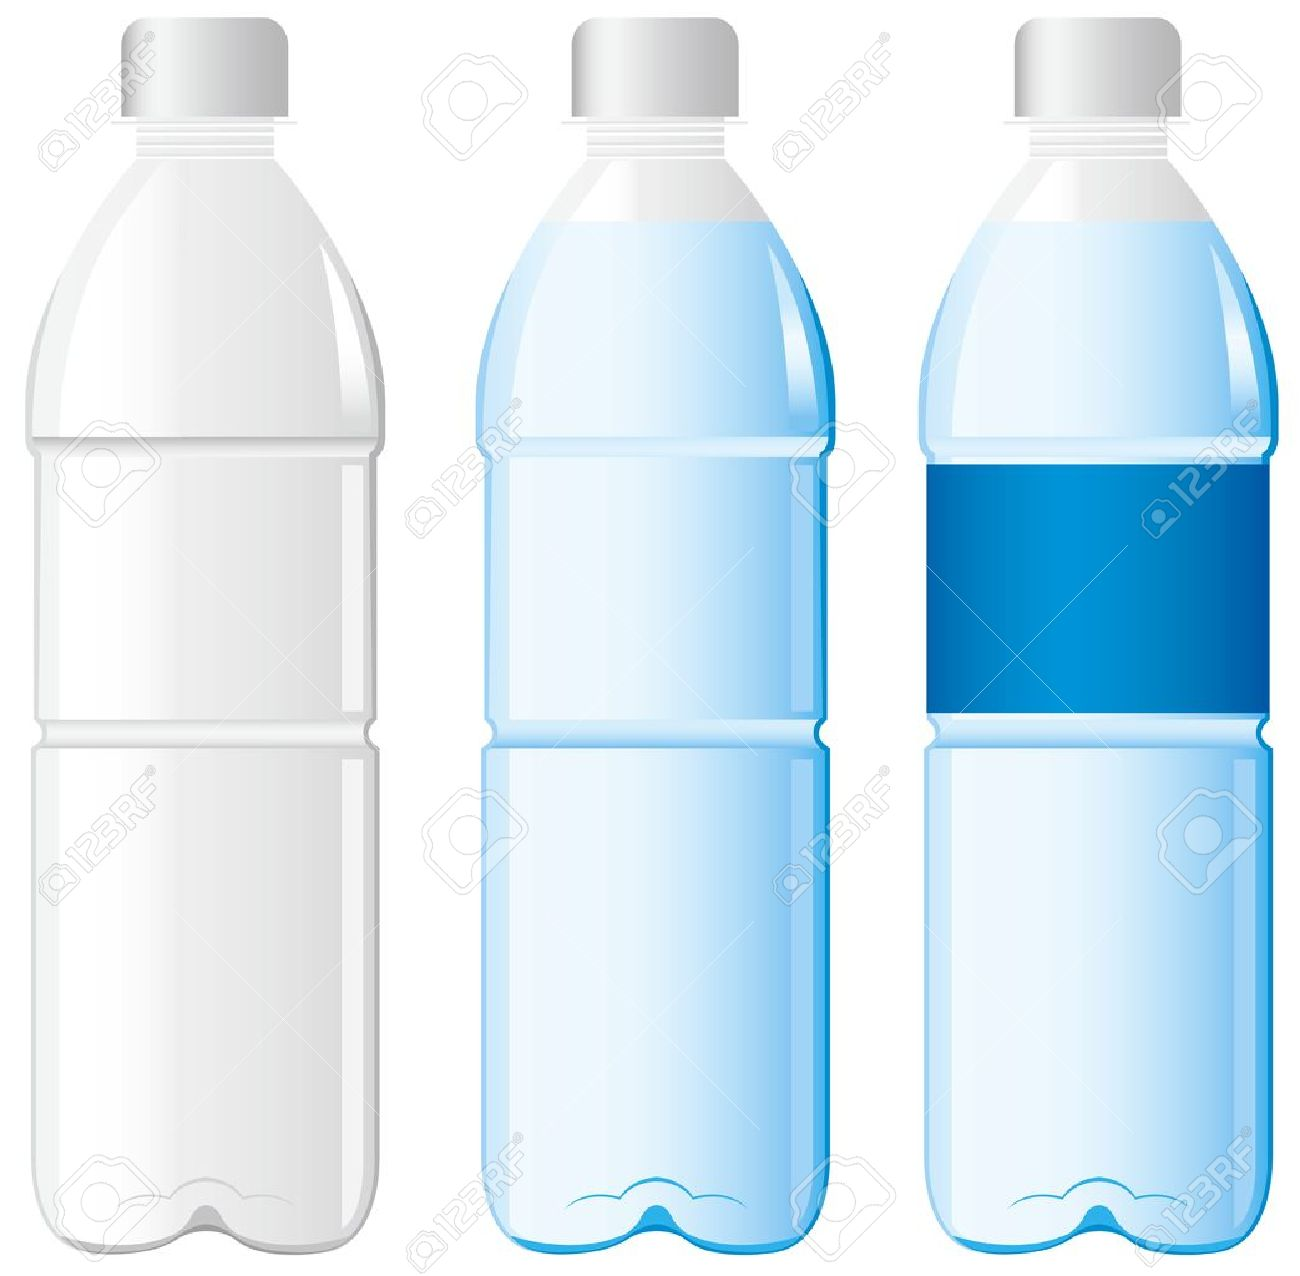 plastic bottle: bottle of water Vector Illustration